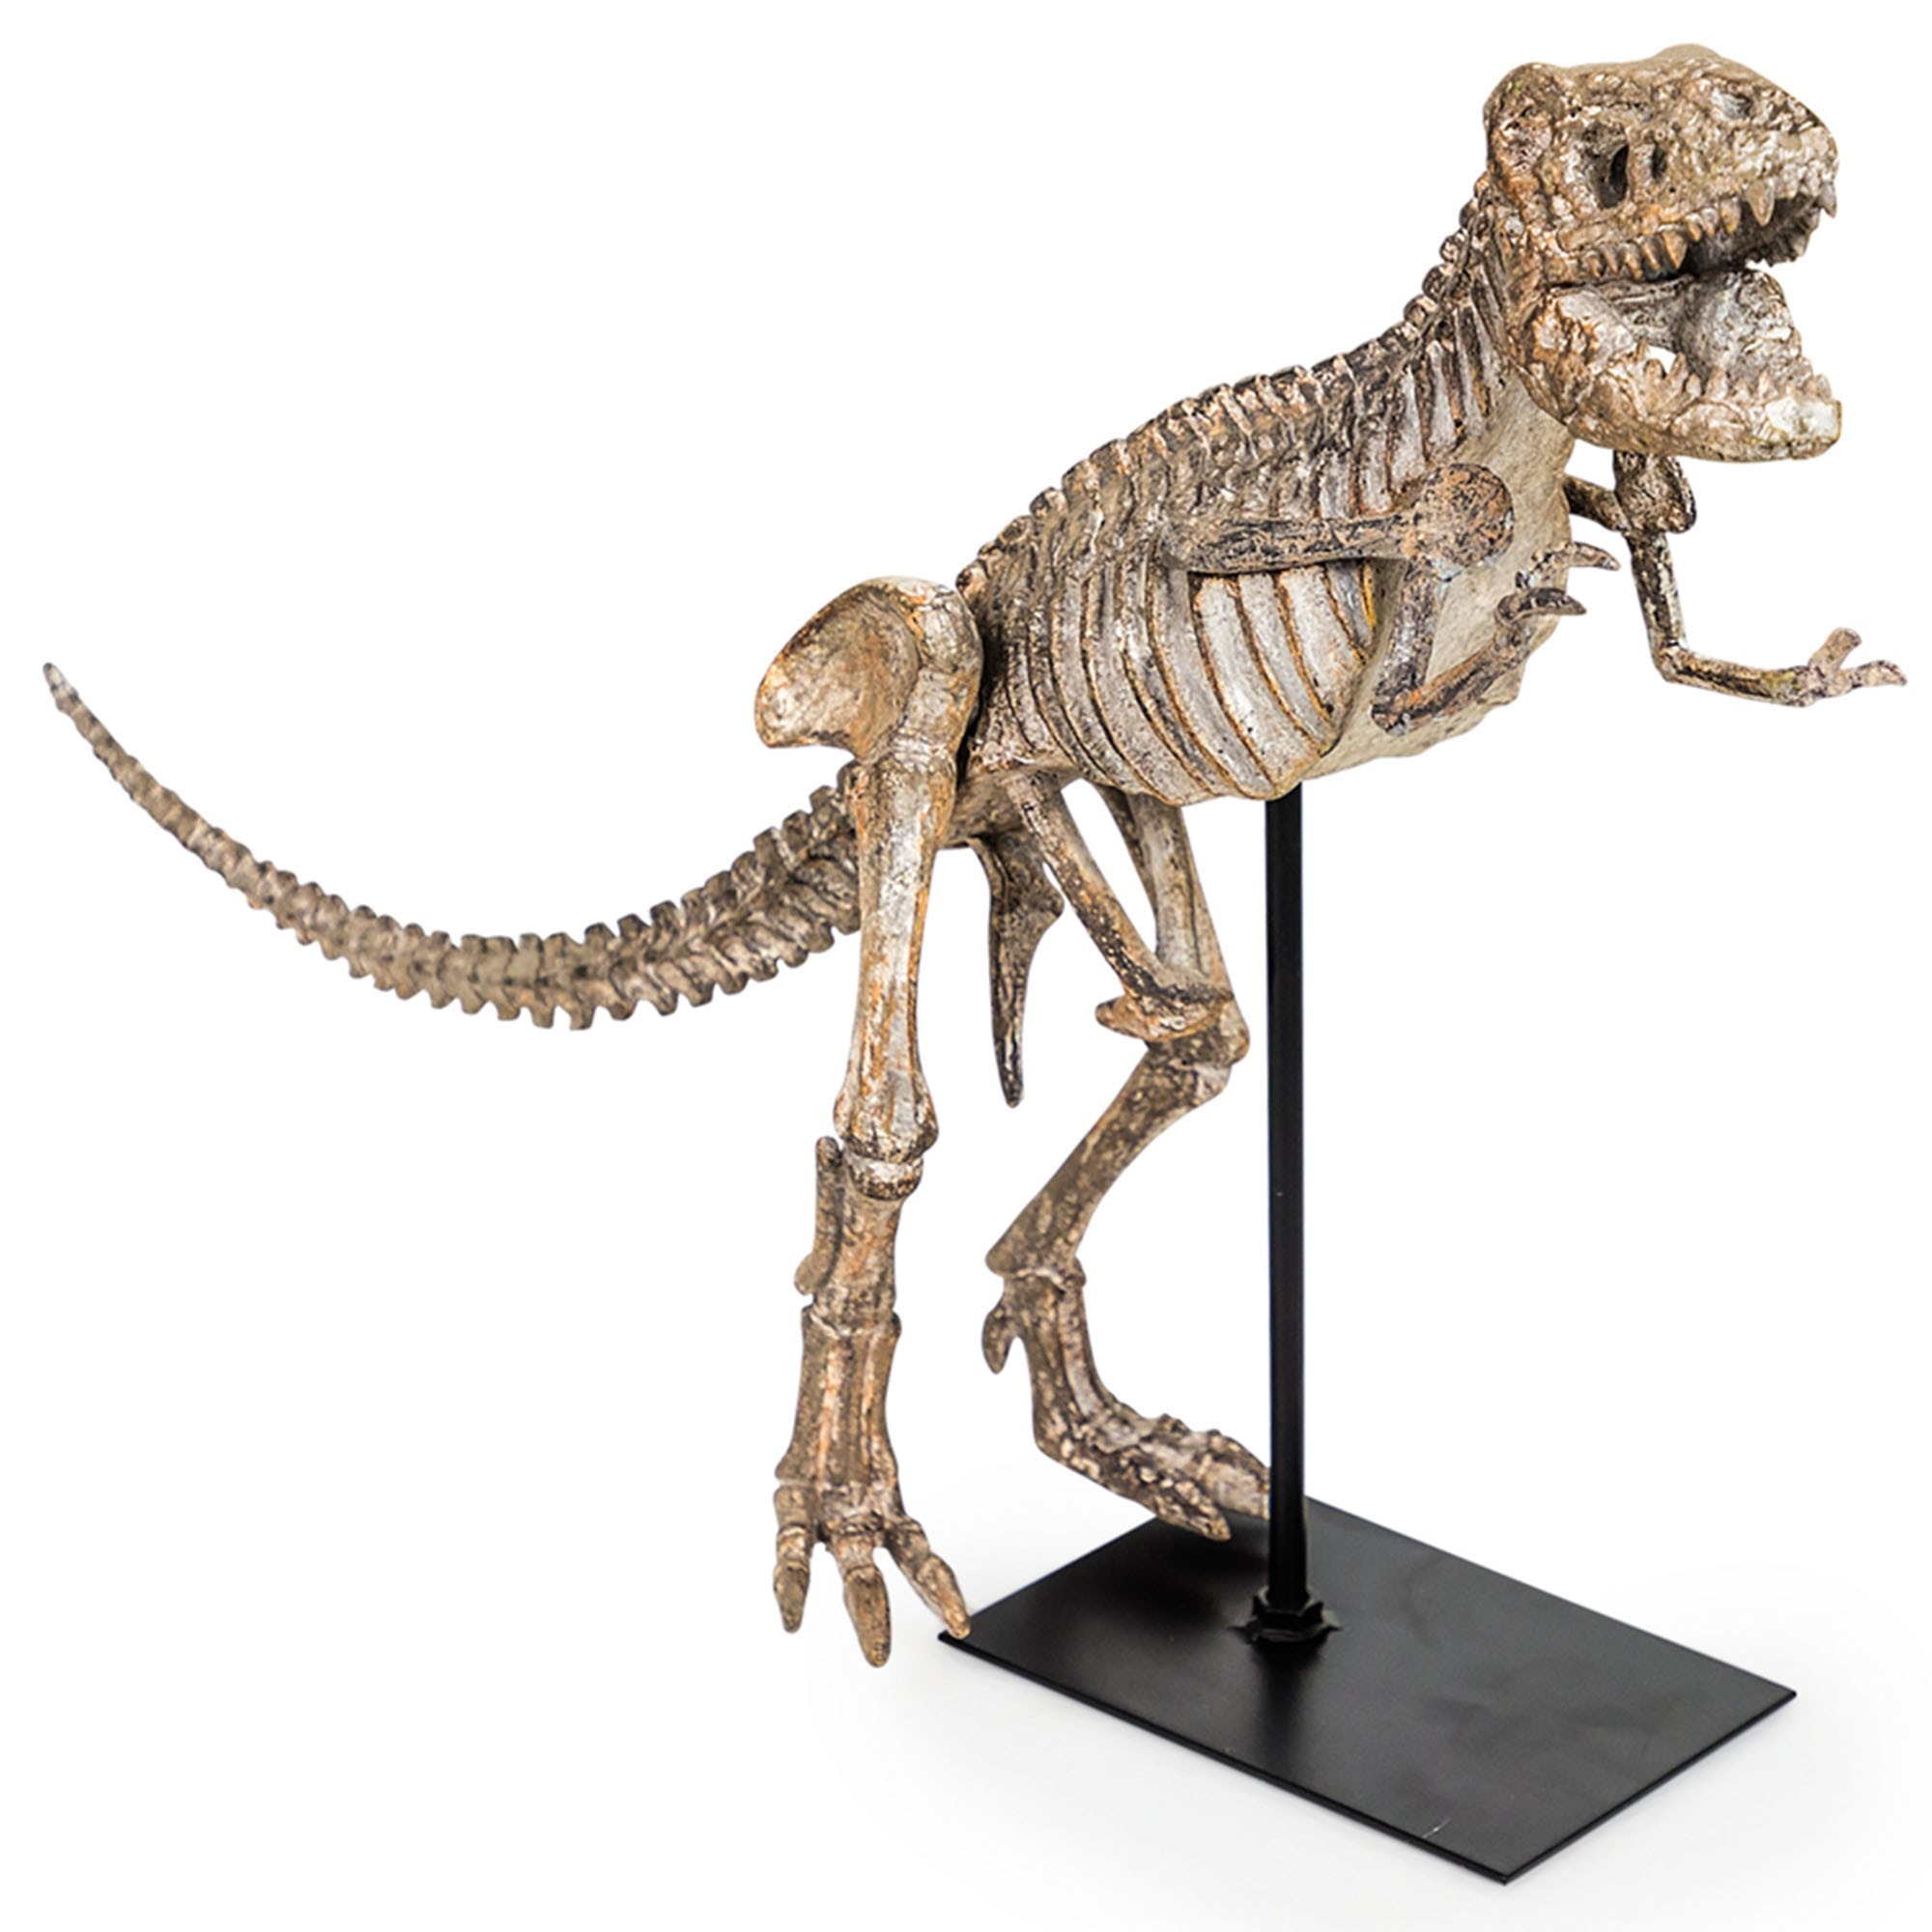 Large Dinosaur Skeleton On Stand Home Accessories Indoor Ornaments